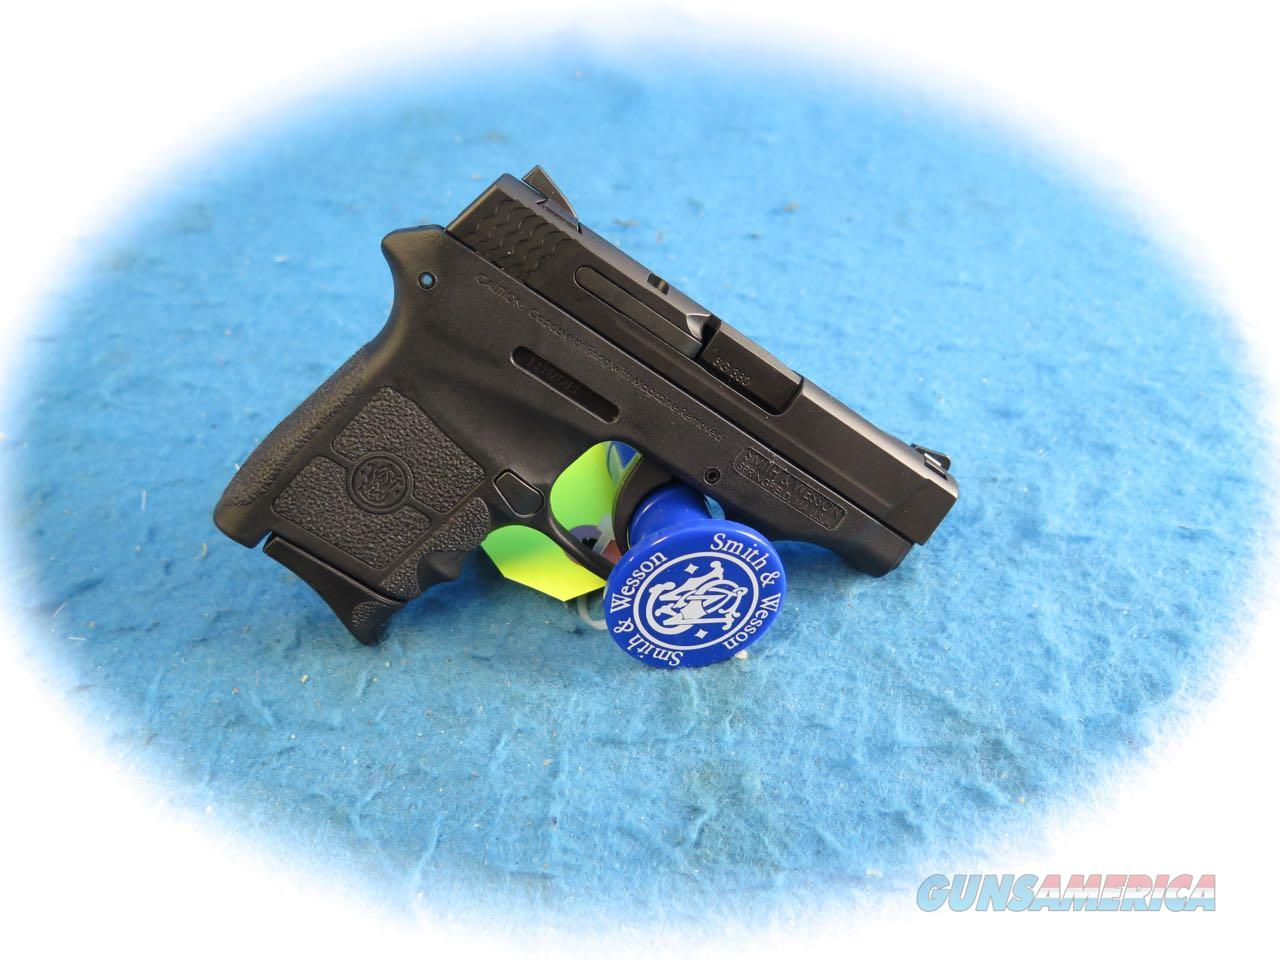 Smith & Wesson M&P Bodyguard 380 Pistol No Laser W/TS **As New**  Guns > Pistols > Smith & Wesson Pistols - Autos > Polymer Frame